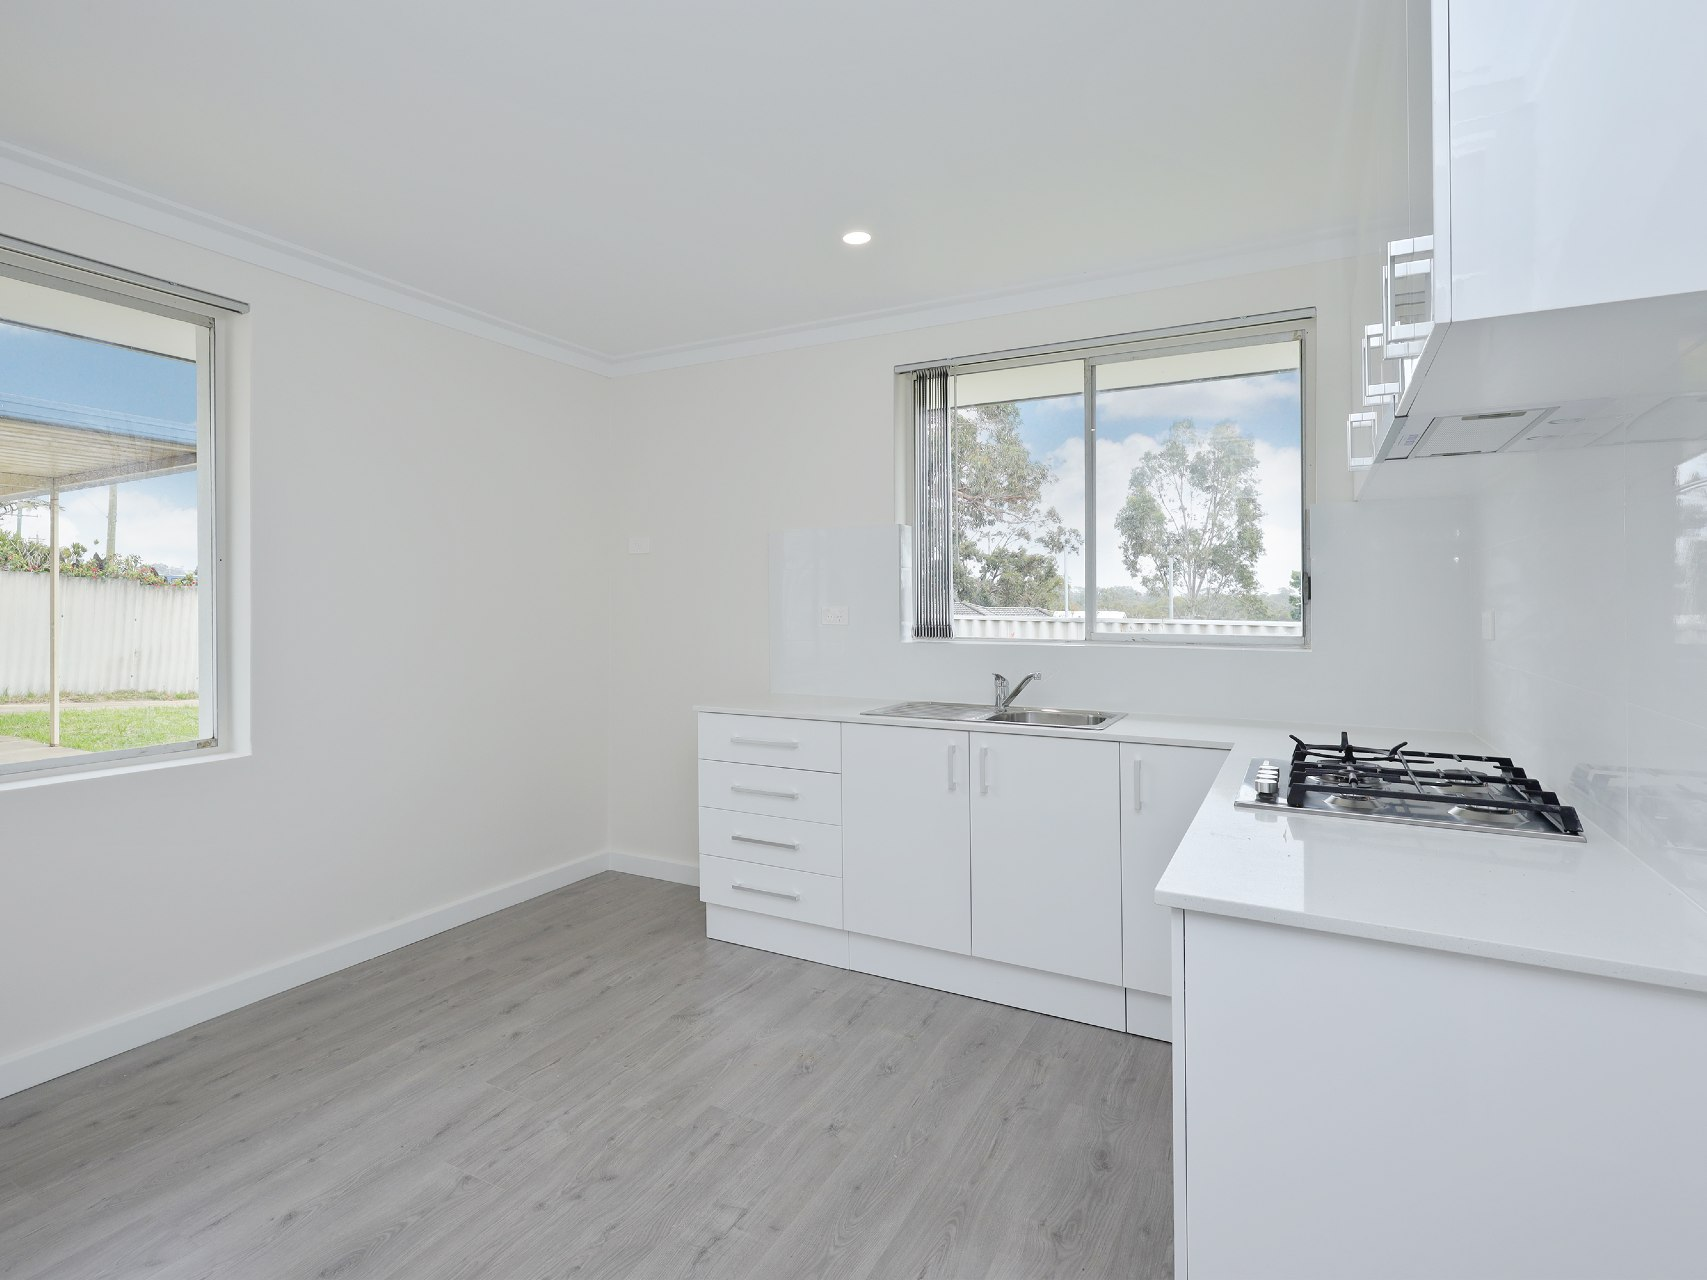 Kitchen renovation completed in Parmelia.